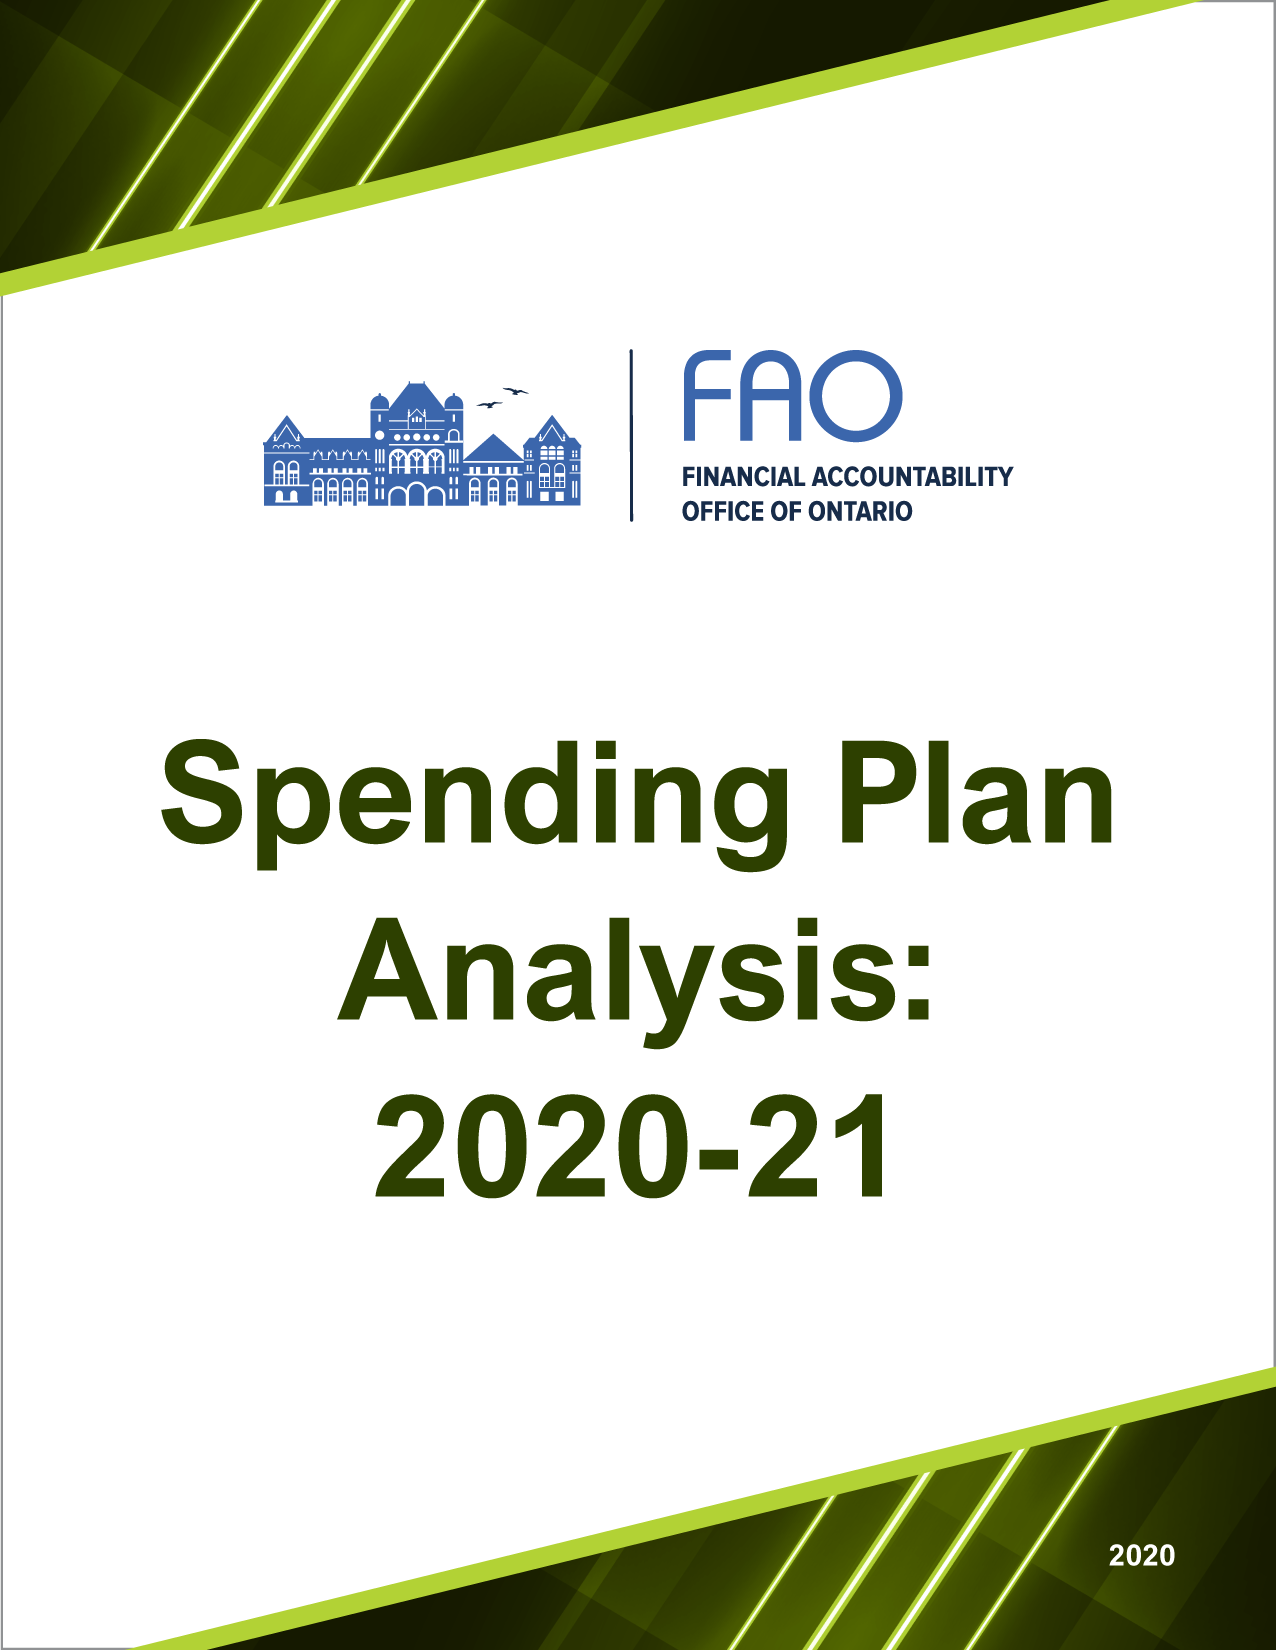 Spending Plan Analysis: 2020-21